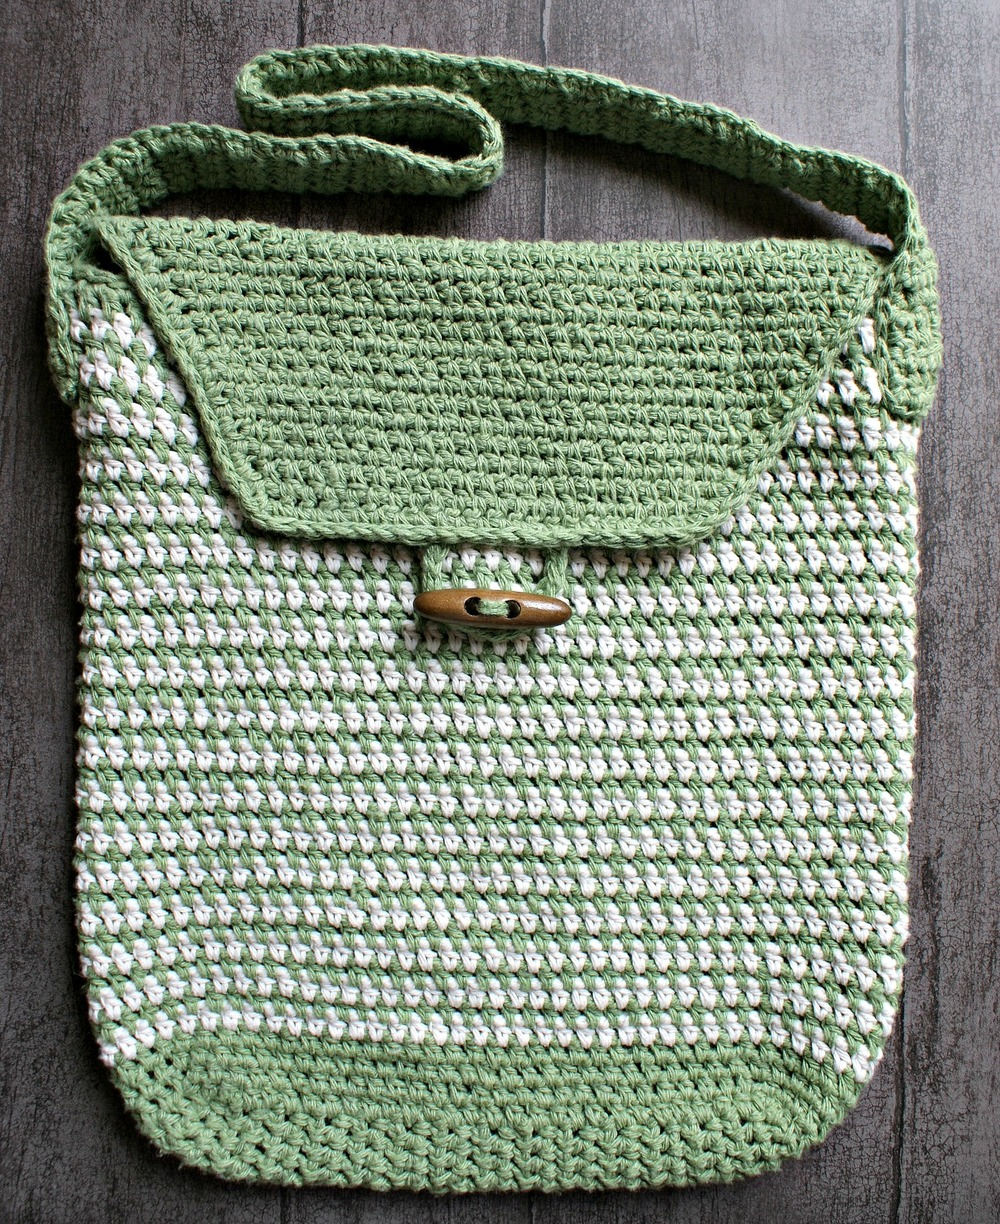 Work Satchel Crochet Bag Pattern | FaveCrafts.com